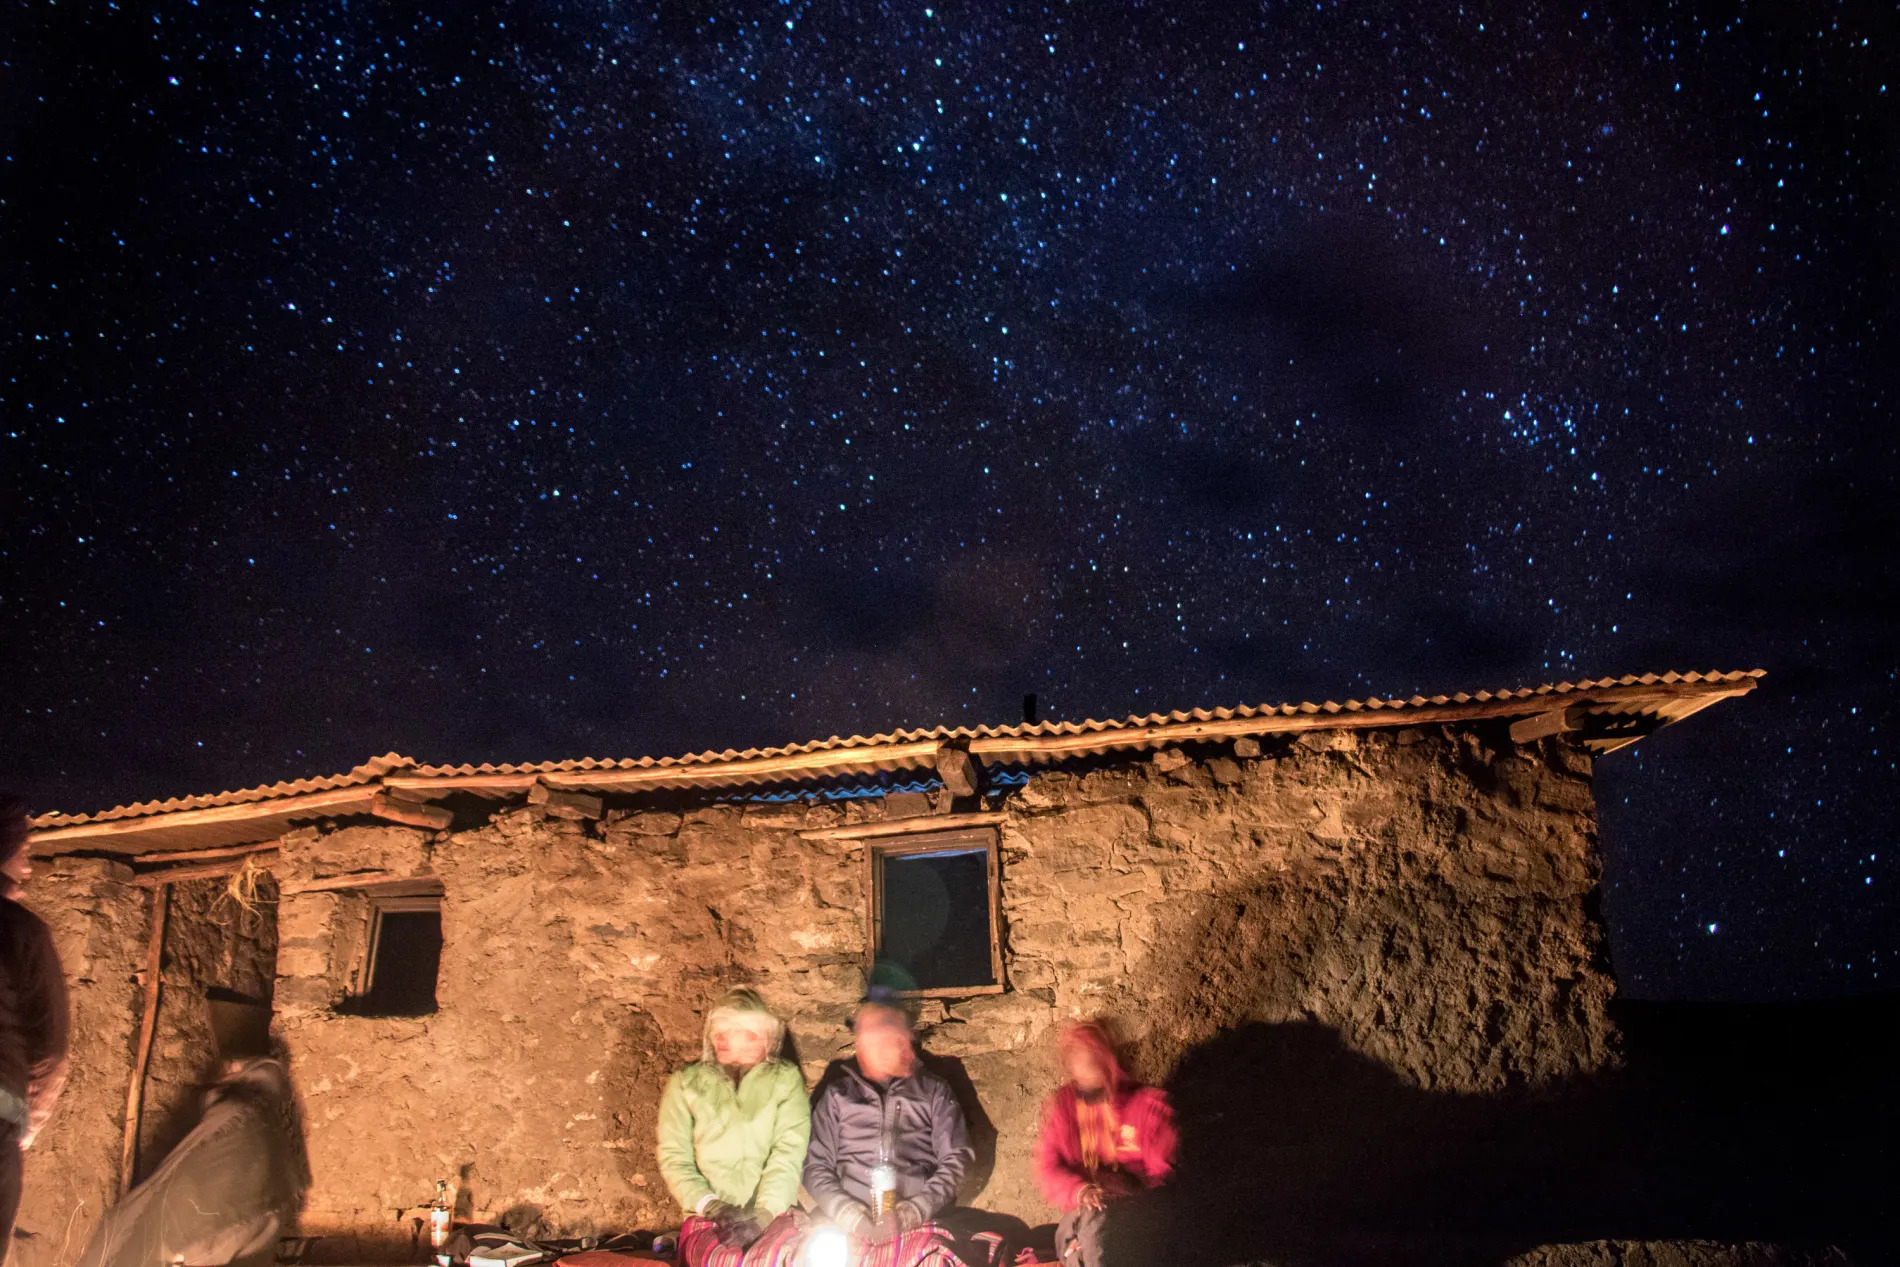 Stars over the camp site in the Simien Mountains